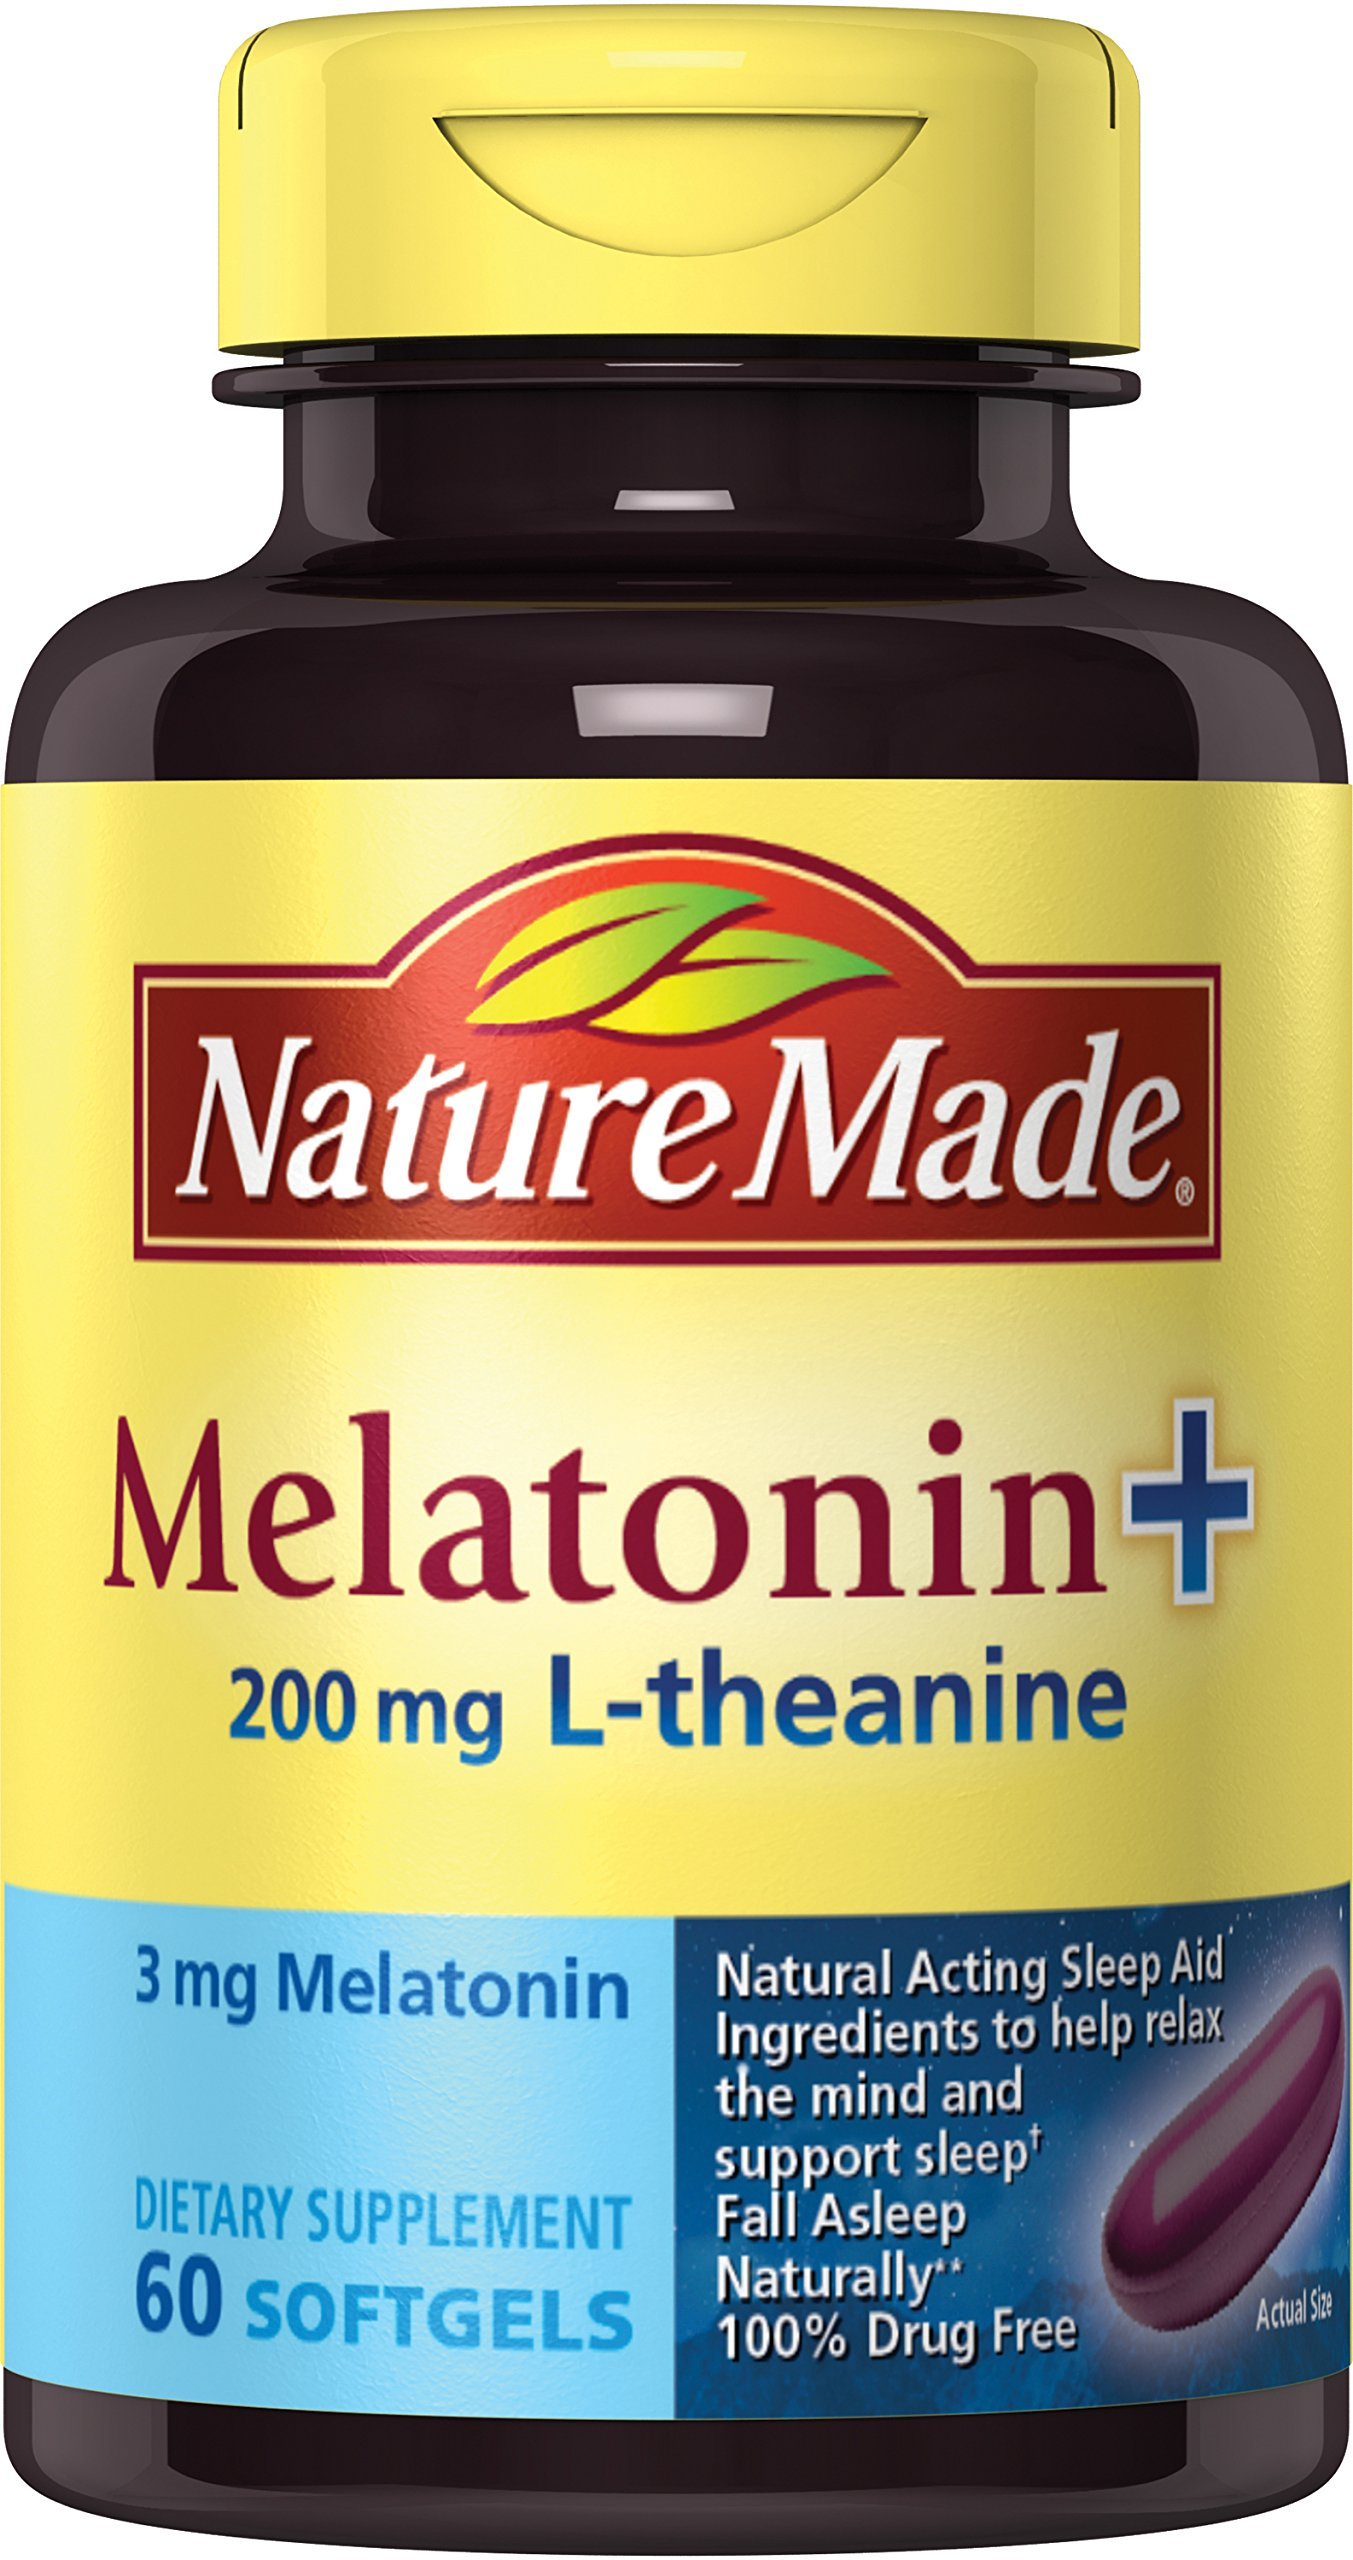 Nature Made Melatonin + with 200 Mg L-theanine, 60 Ct